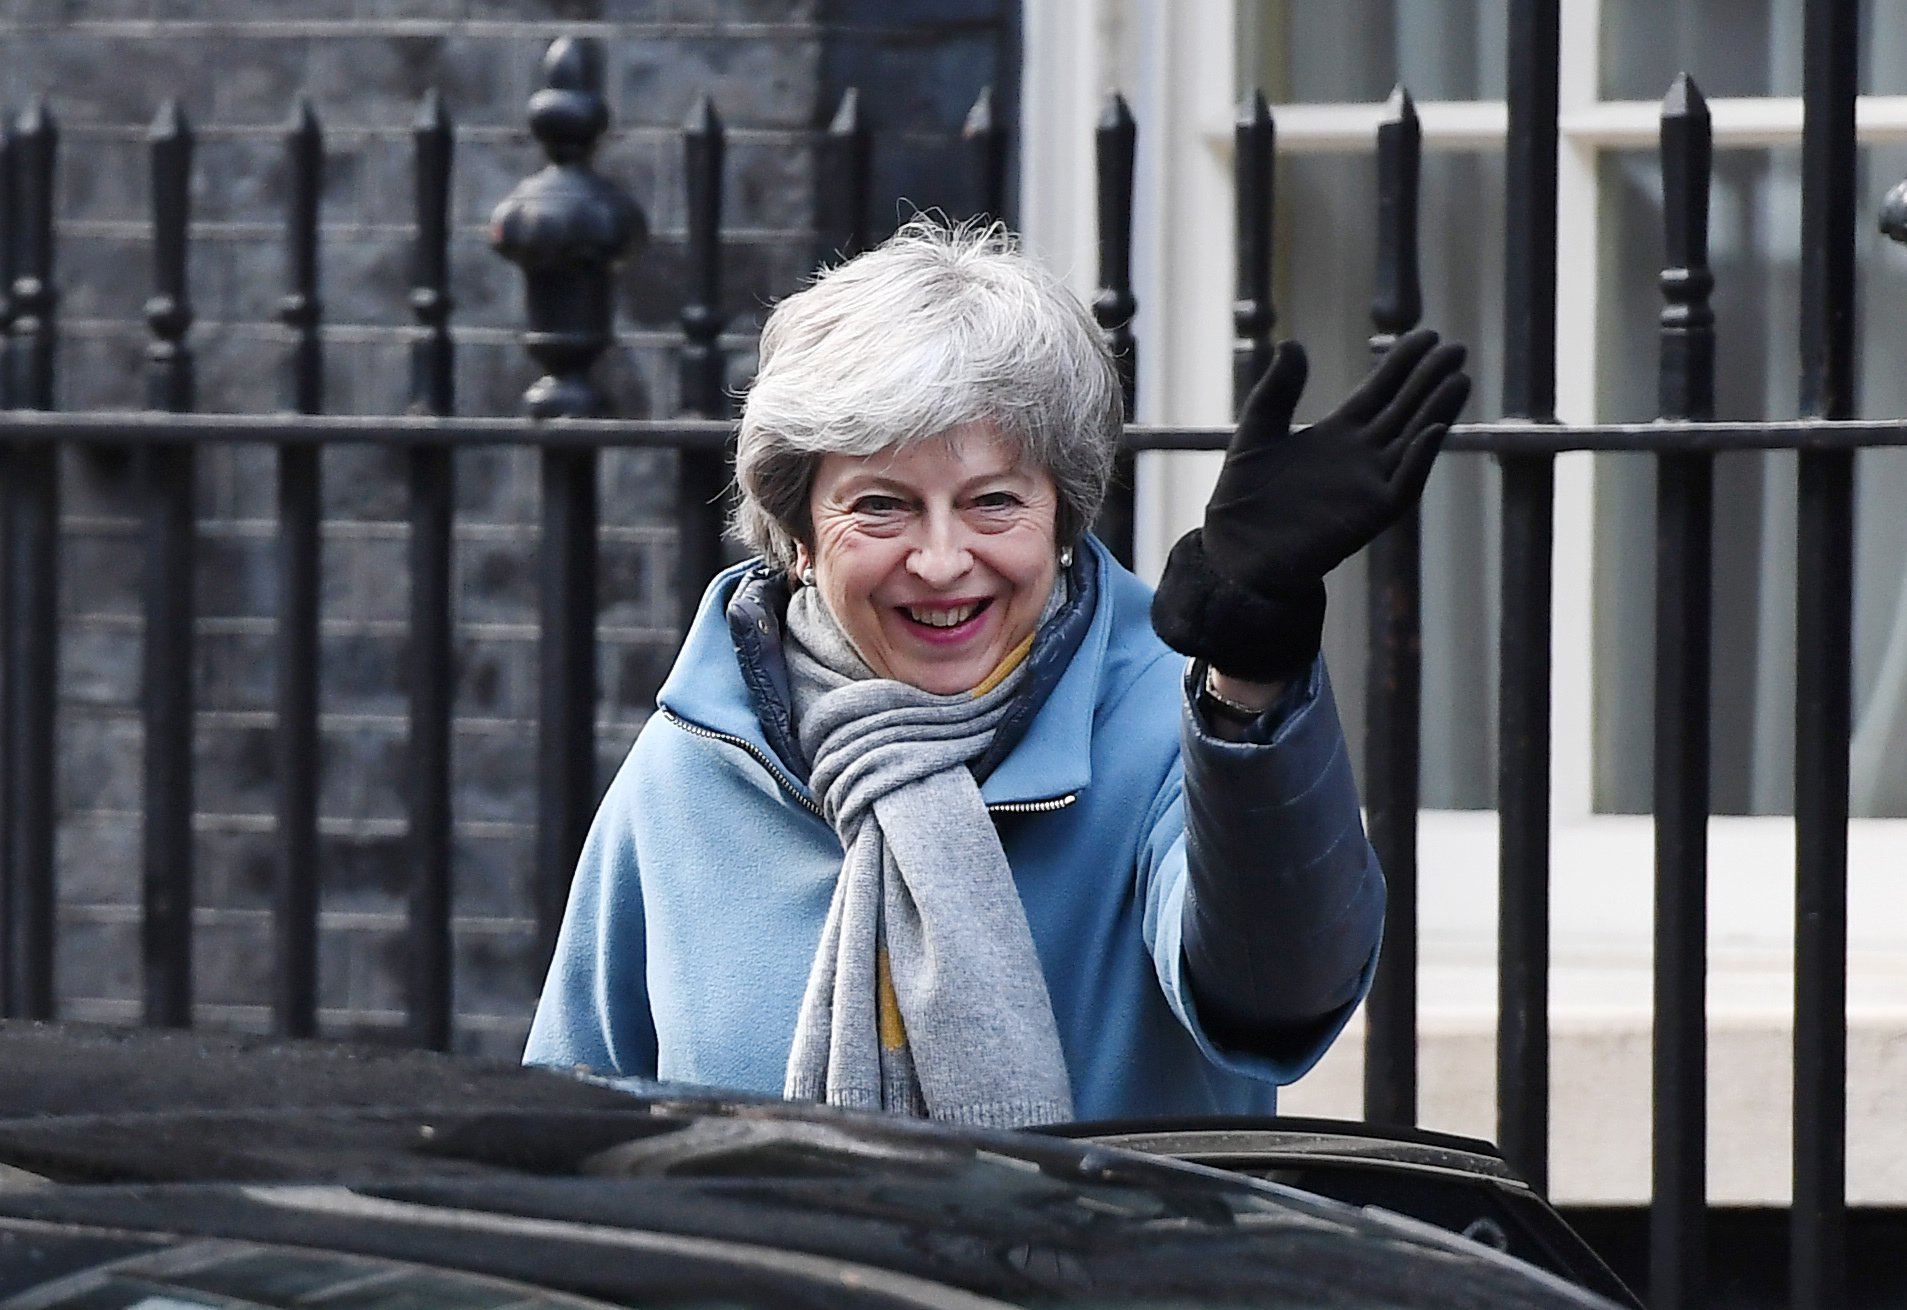 epa07436865 British Prime Minister, Theresa May leaves Downing Street in London, Britain, 14 March 2019. Members of Parliament are set to vote on whether to ask European Union for permission to delay Brexit later in the day after they rejected no-deal Brexit on 13 March. EPA/ANDY RAIN